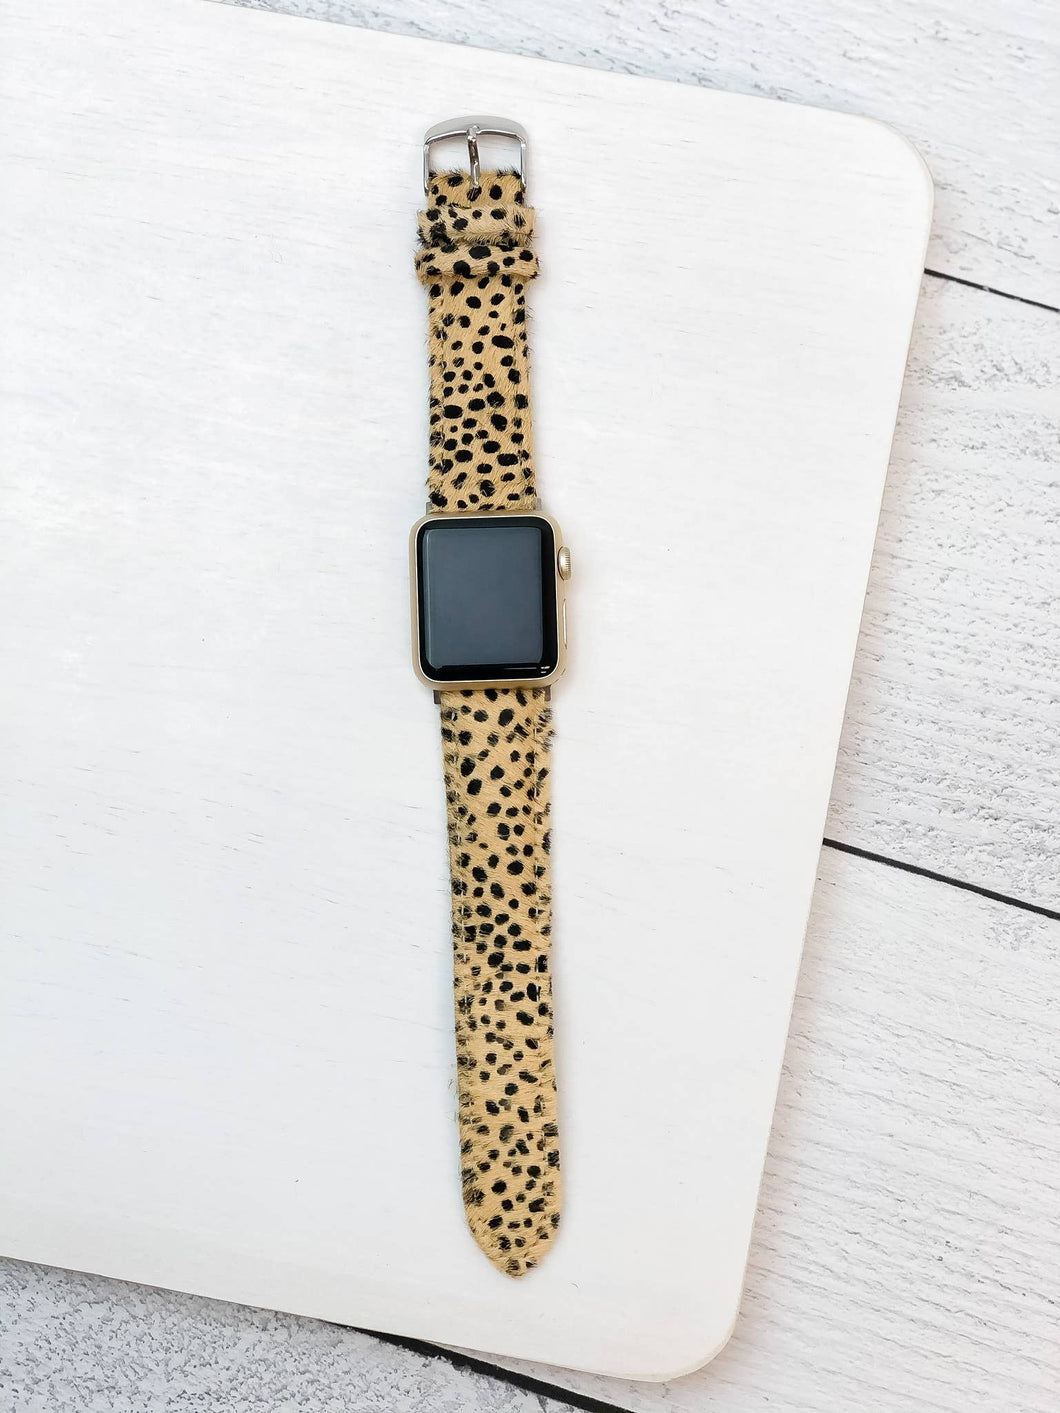 Prep Obsessed Wholesale - Cheetah Textured Leather Smart Watch Band